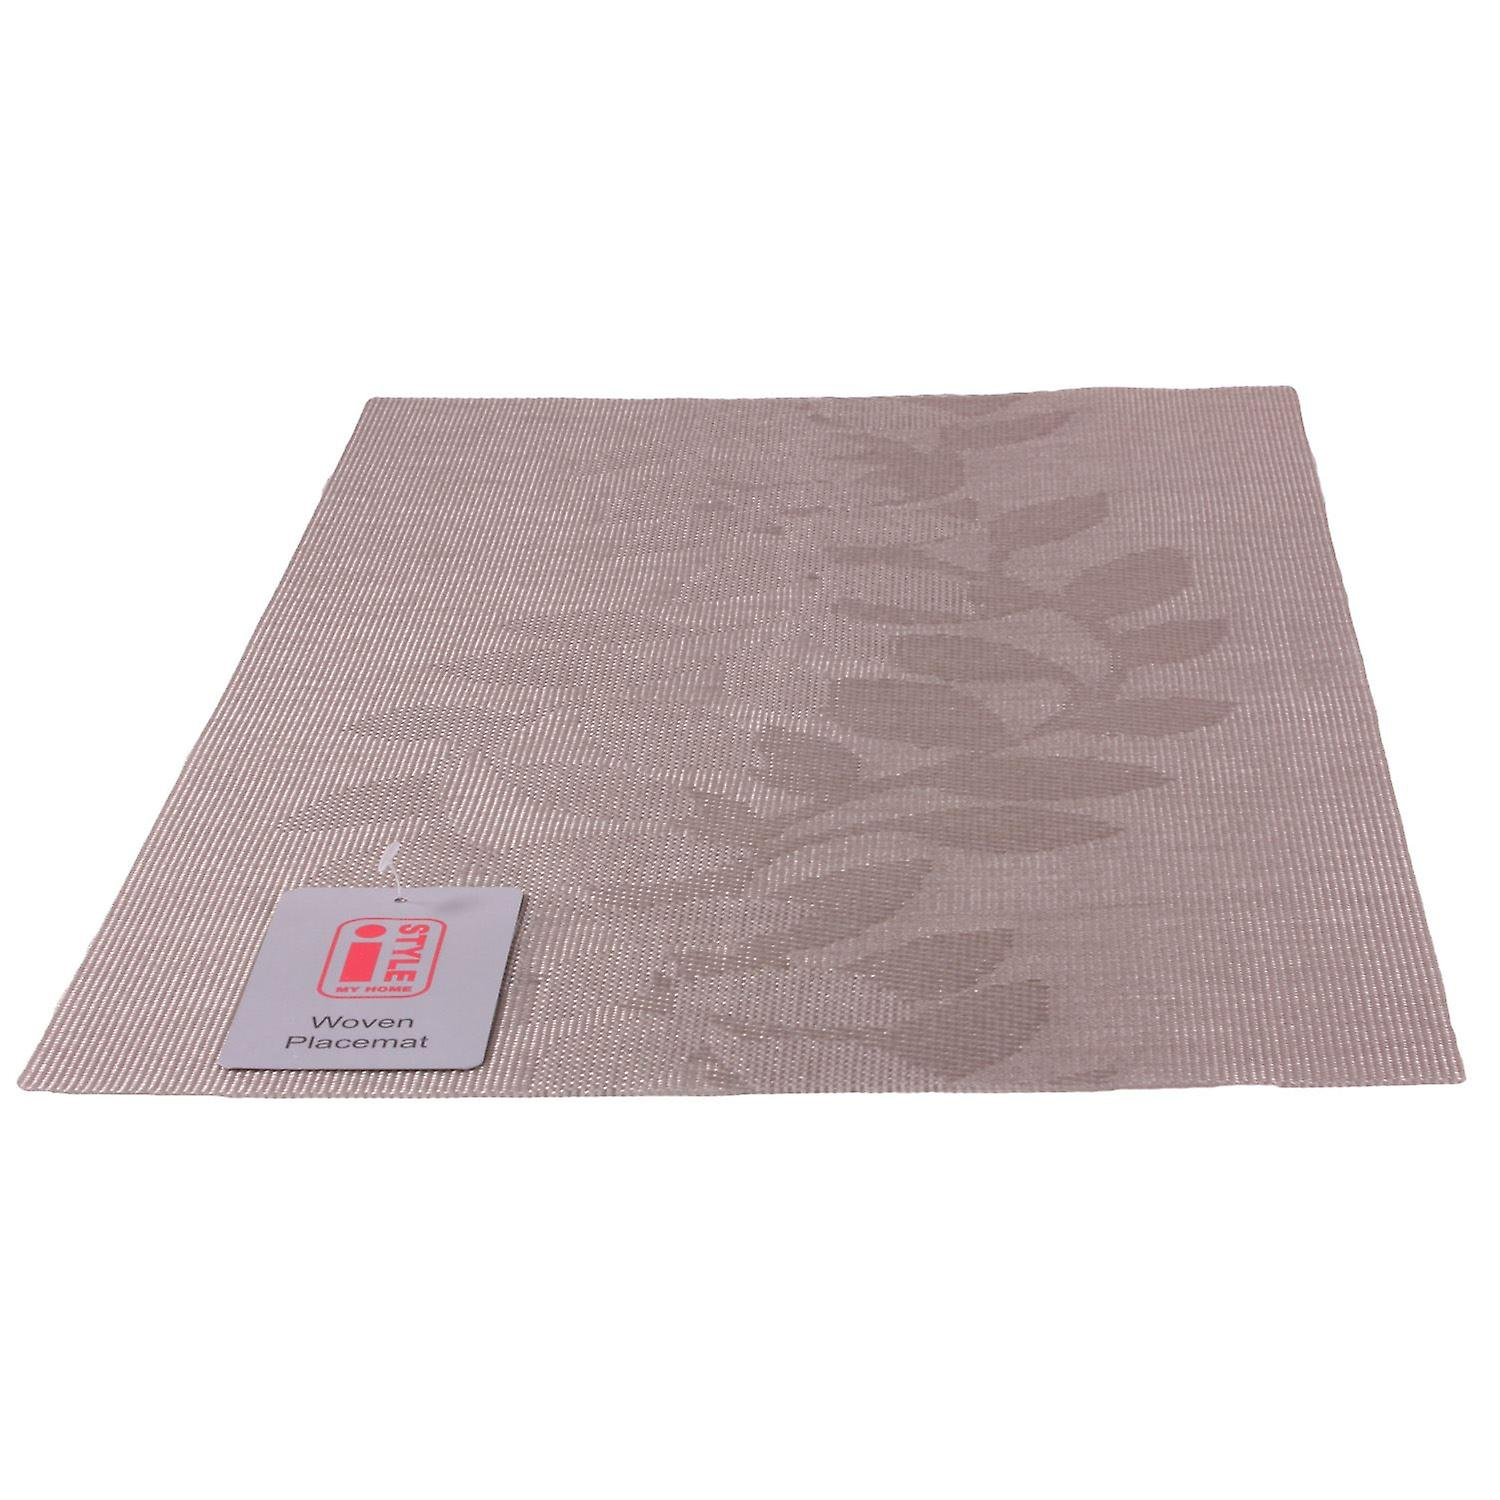 iStyle - Teslin Woven Placemat 30cm x 45cm - Taupe Leaf